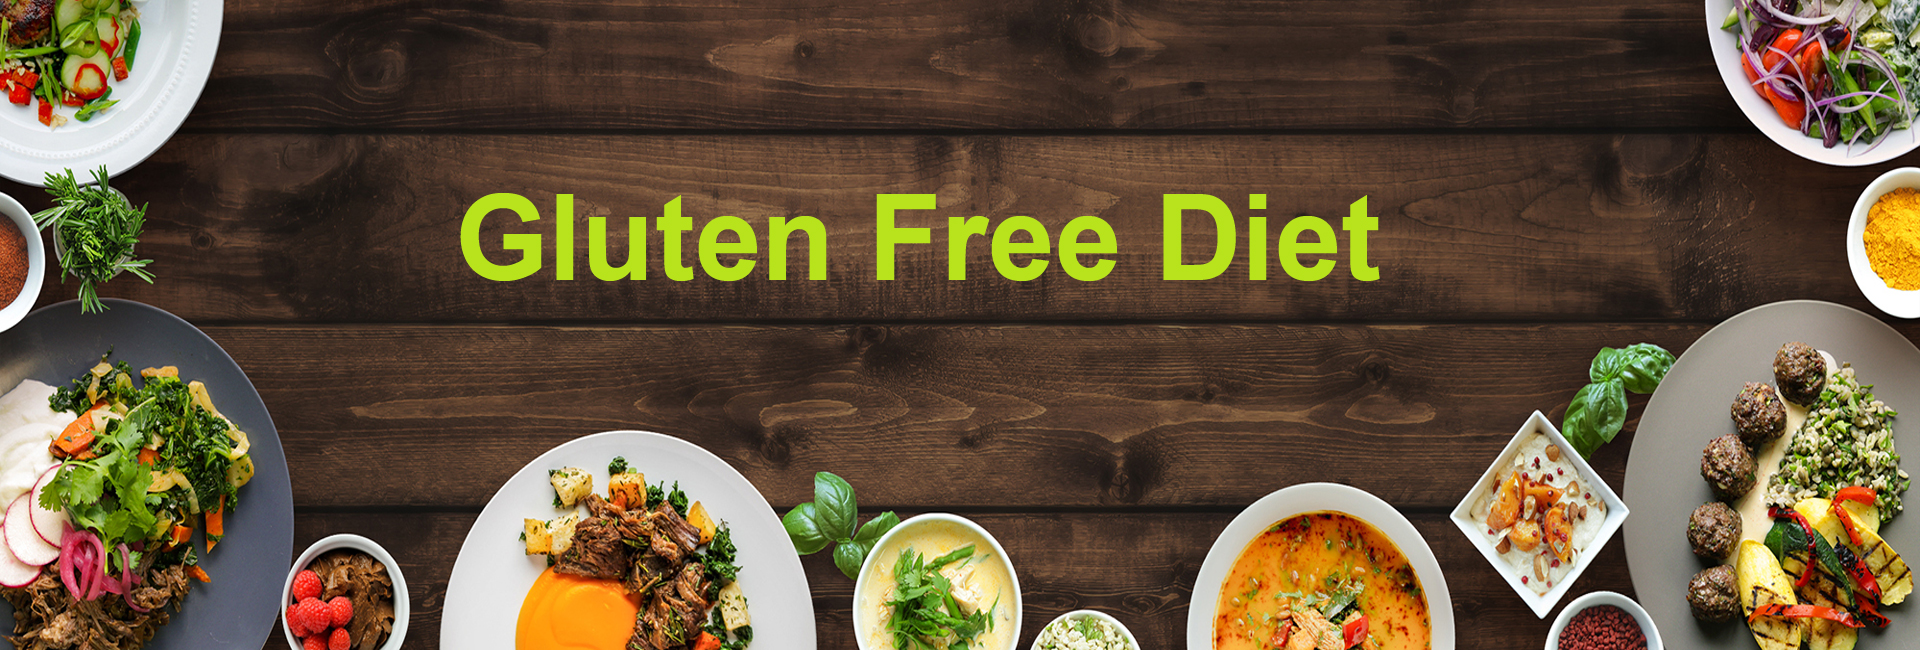 Gluten Free Diet In Prince George